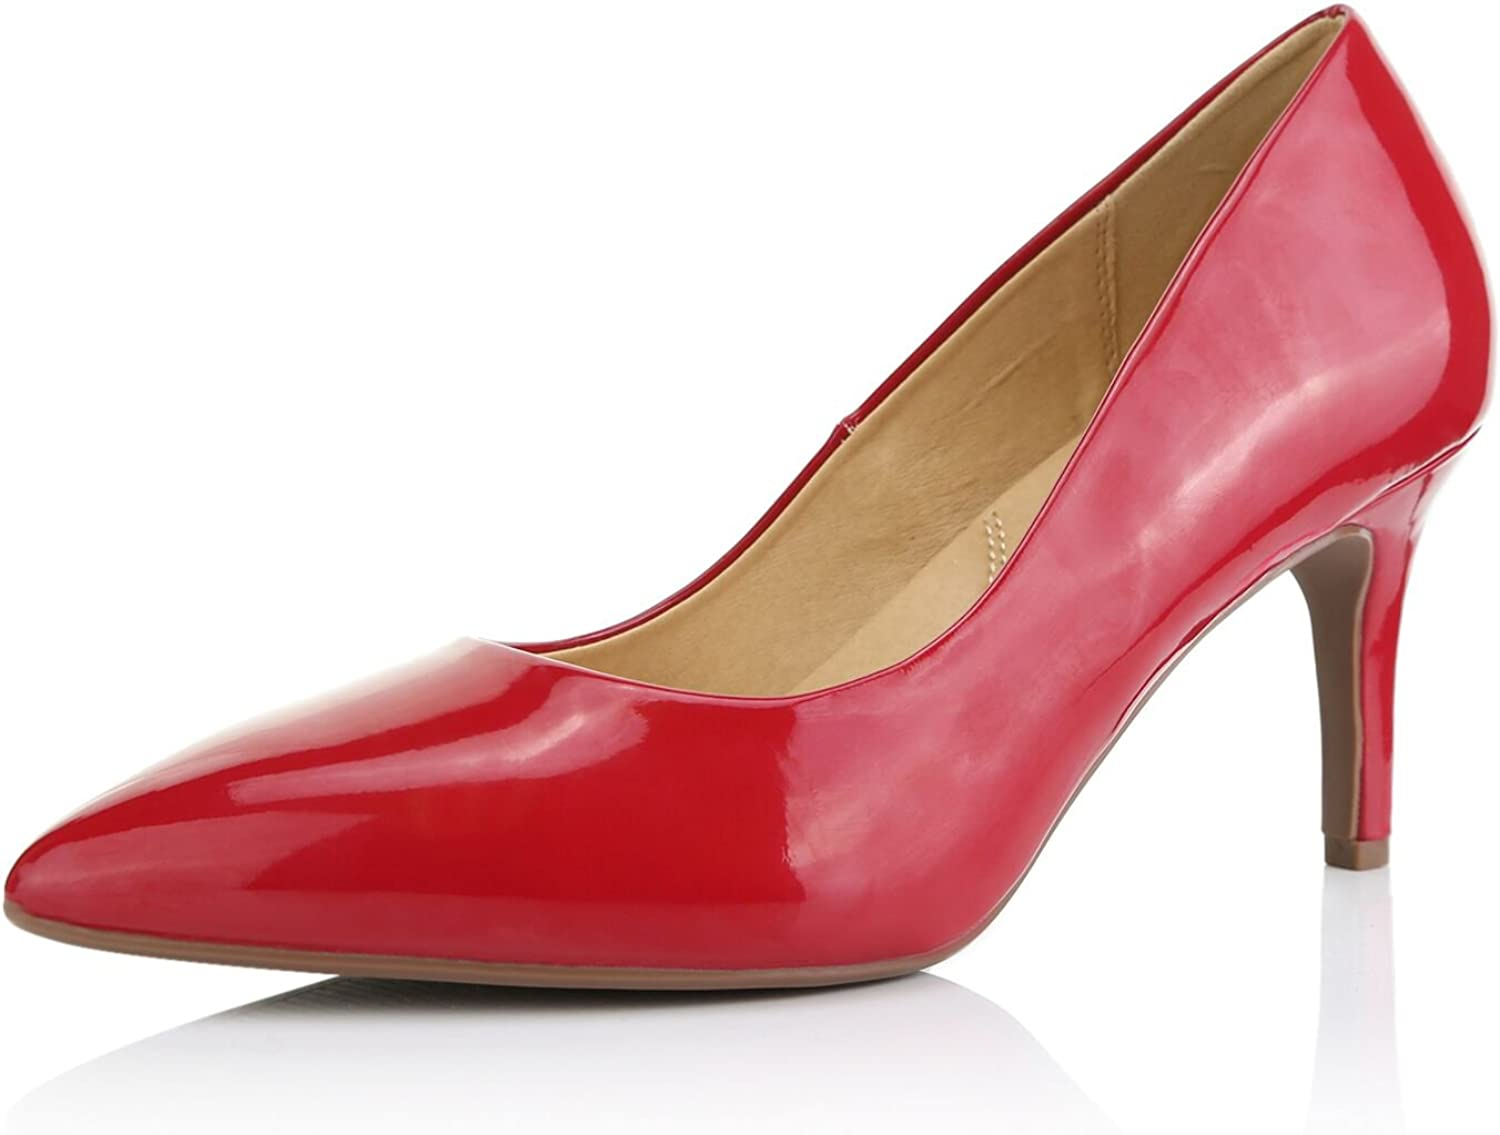 Dailyshoes Women's Comfortable Elegant high Cushioned Low Heels Pointy Close Toe Stiletto Pumps shoes, Red Patent Leather, 6 B(M) US